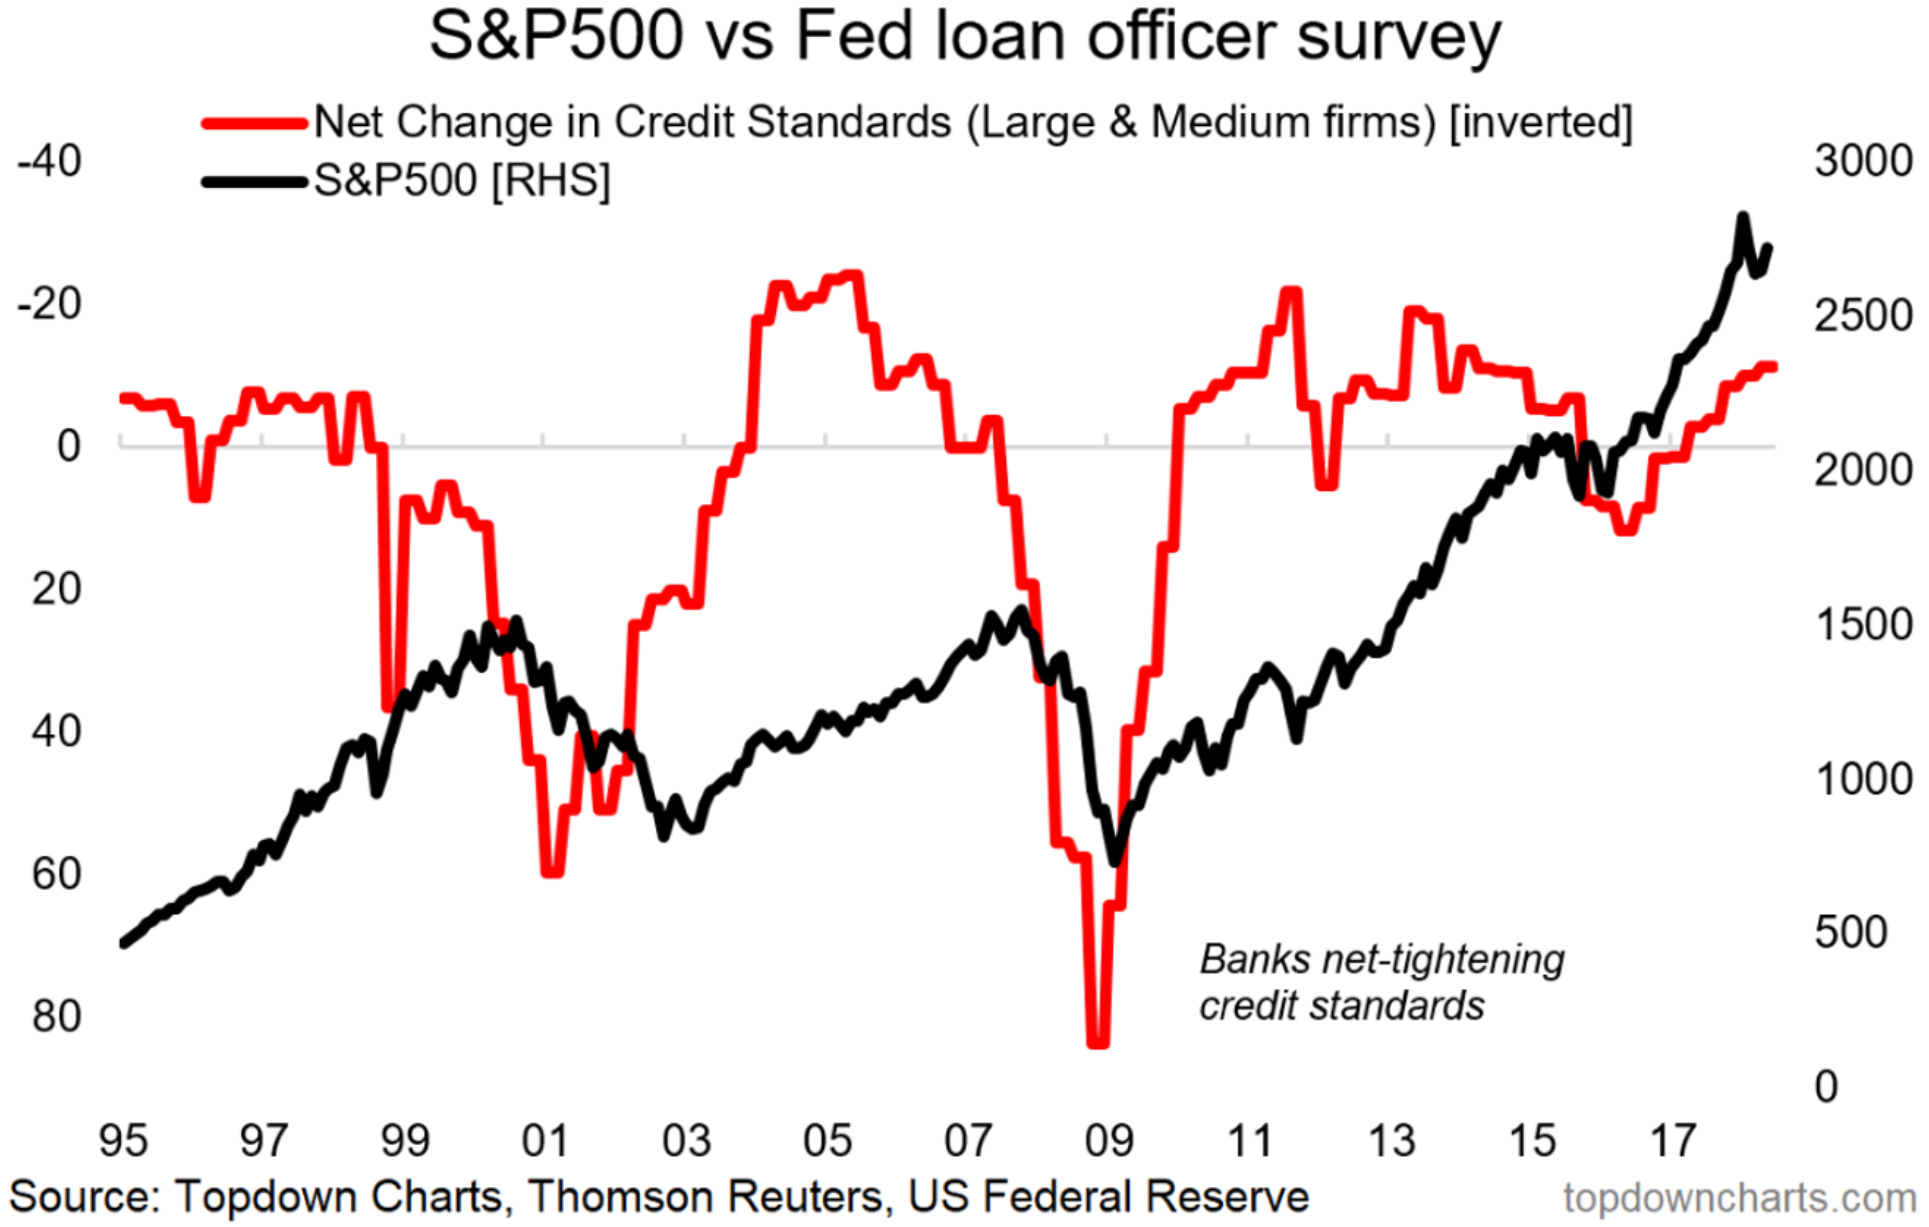 Fed loan officer survey vs spx